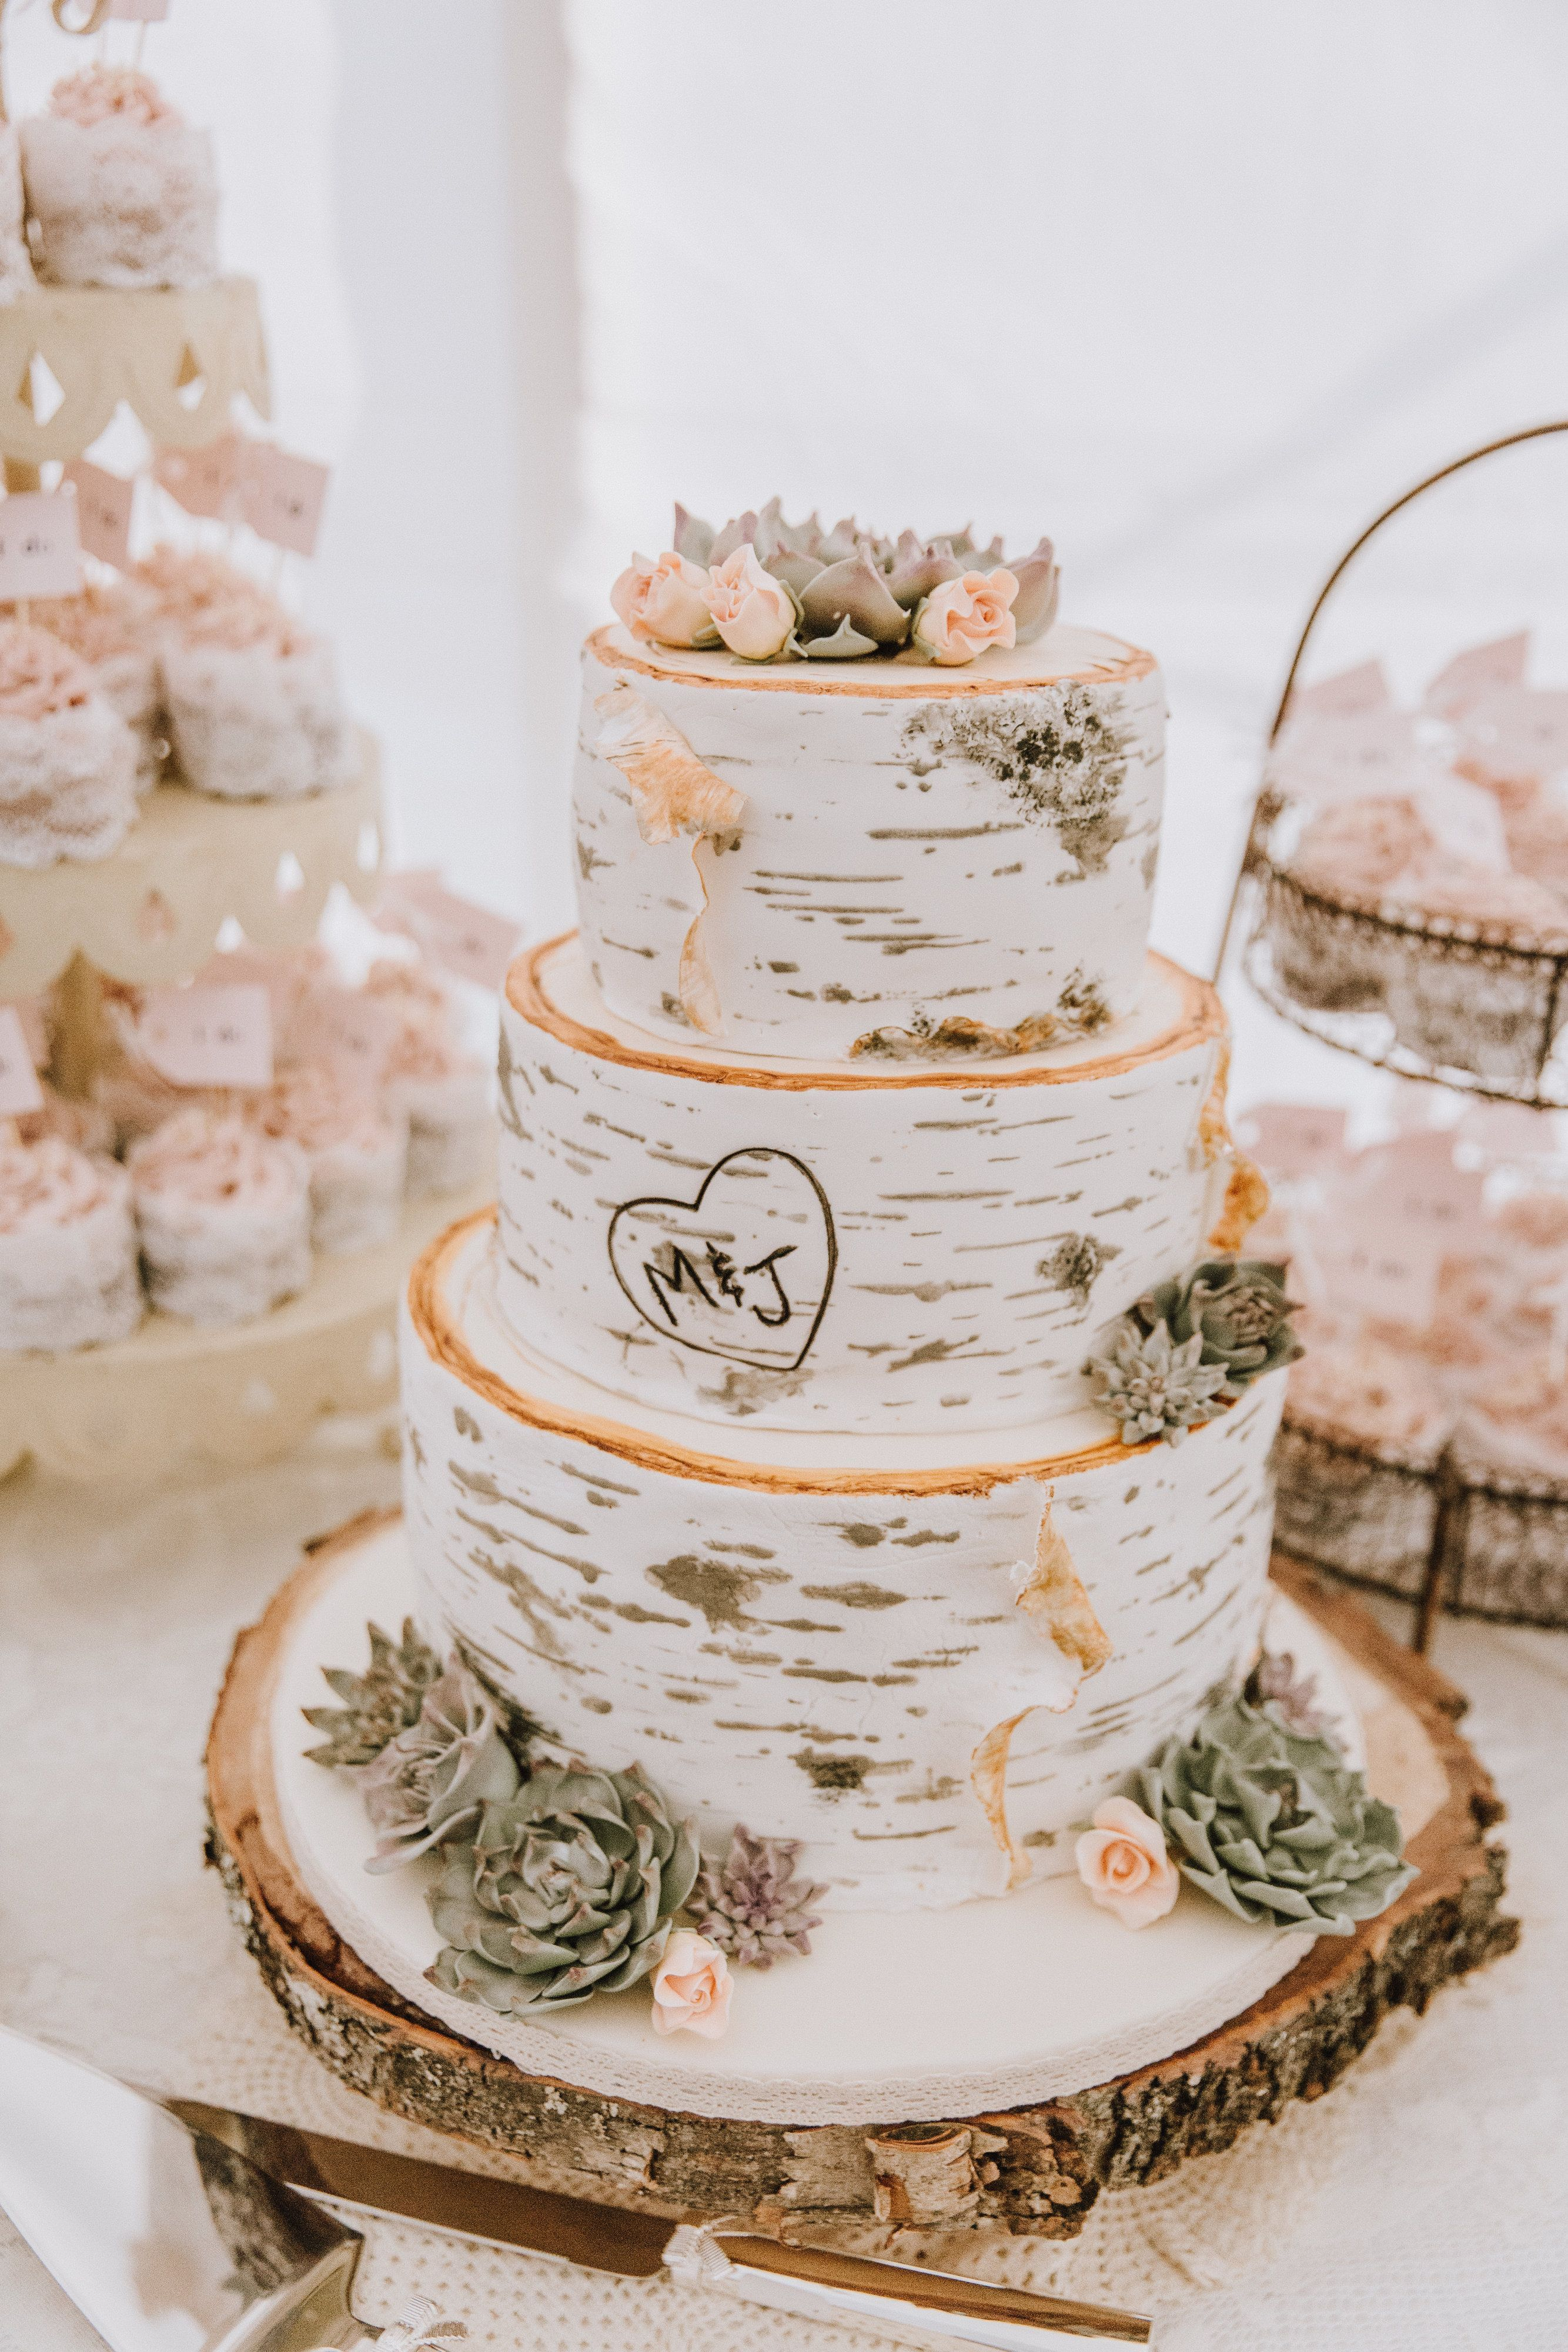 Birch Bark Wedding Cake With Fondant Succulents And Roses Made By